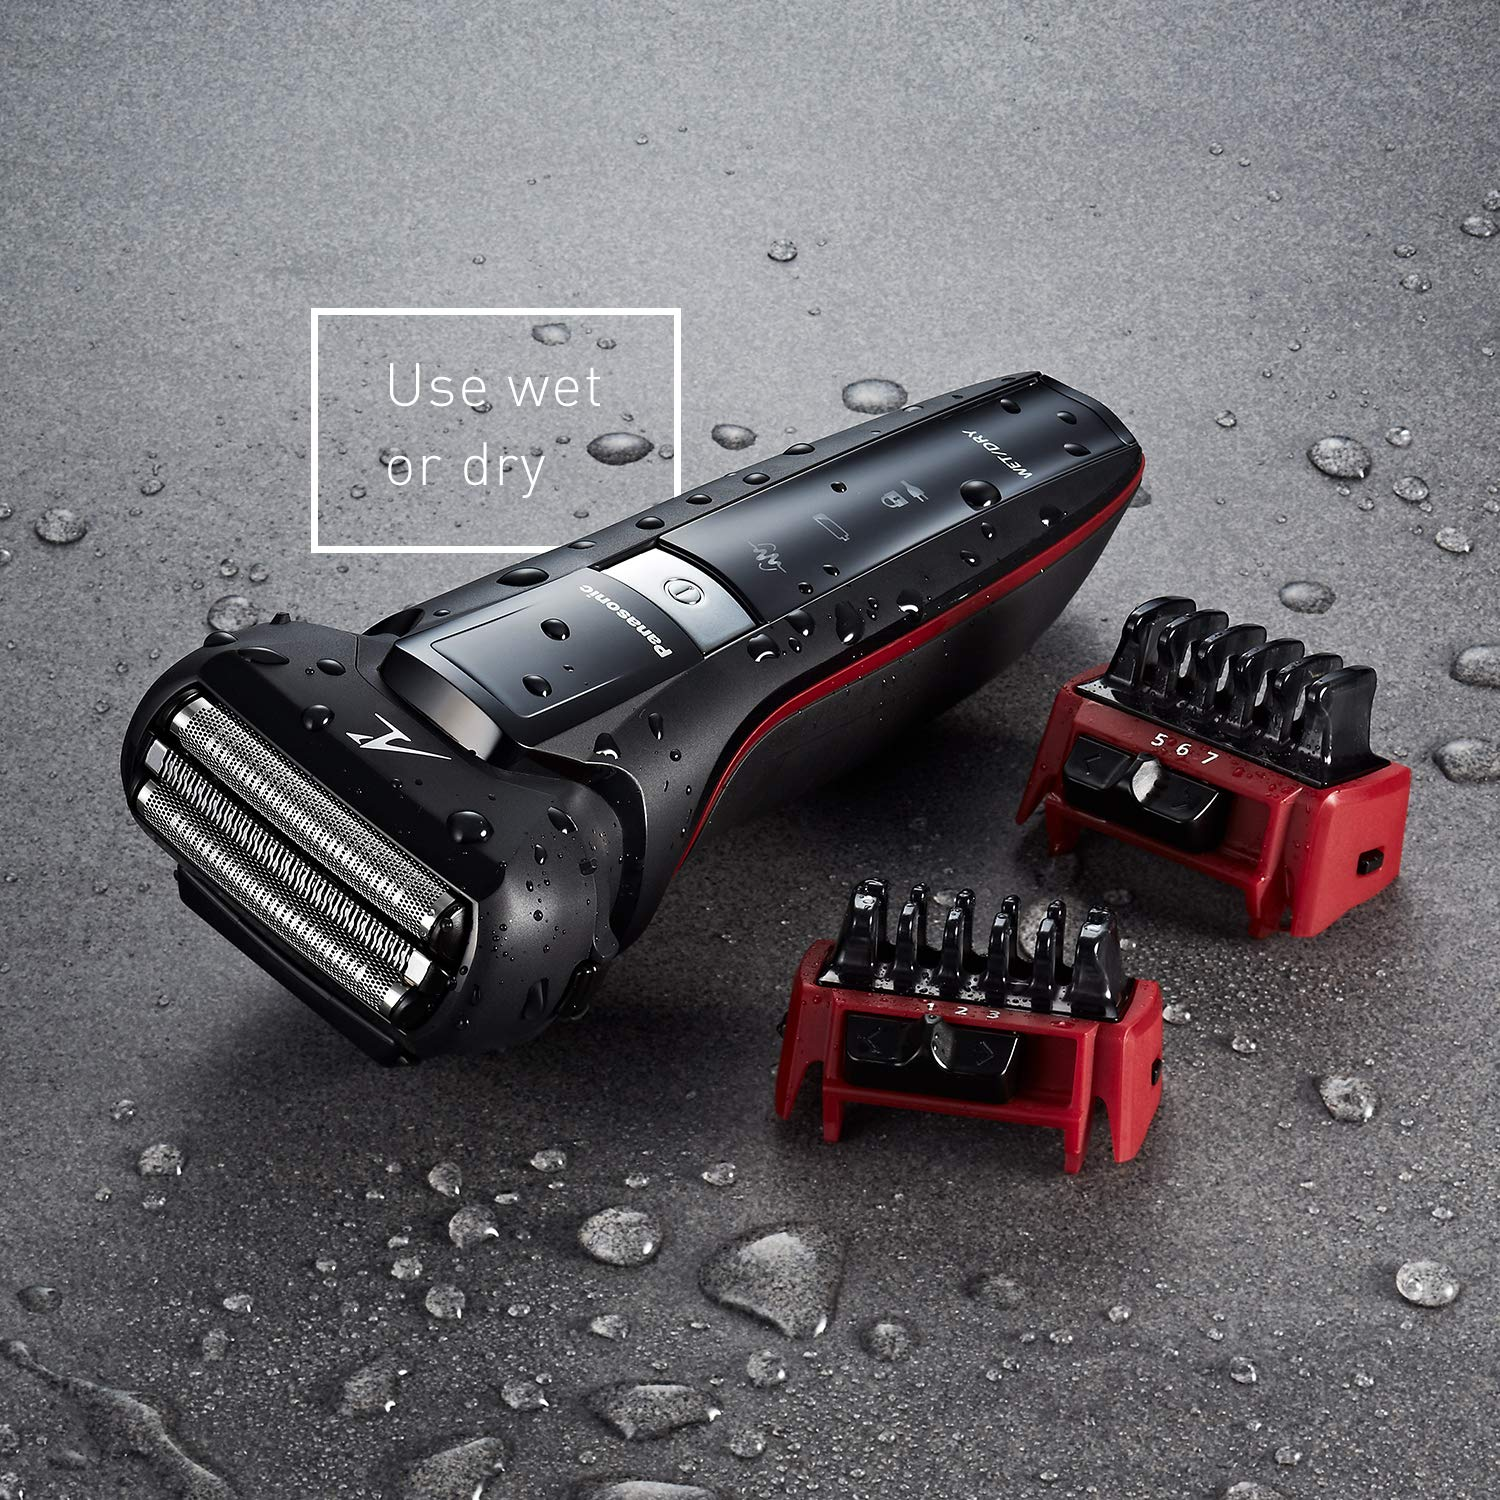 Panasonic Hybrid Wet Dry Shaver, Trimmer & Detailer with Two Adjustable Trim